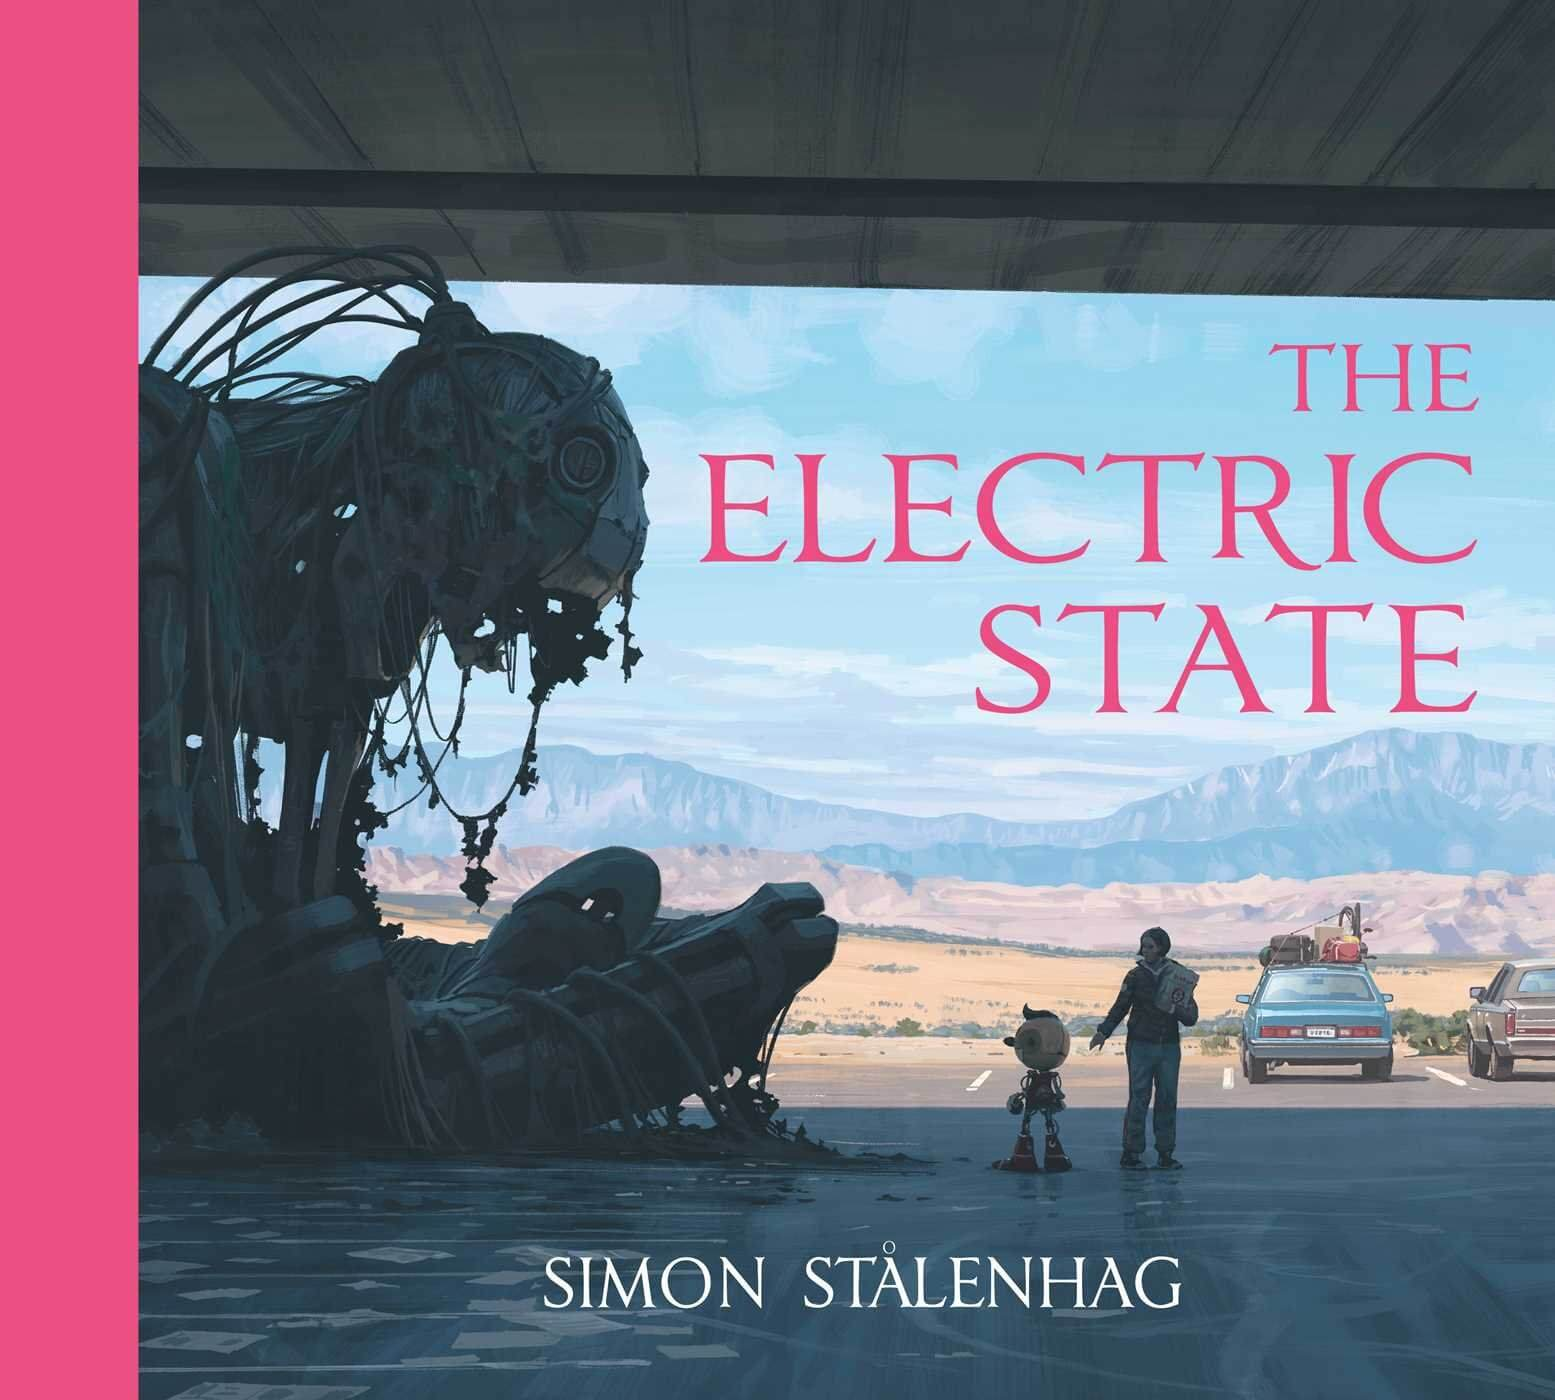 The Electric State Book Cover Image